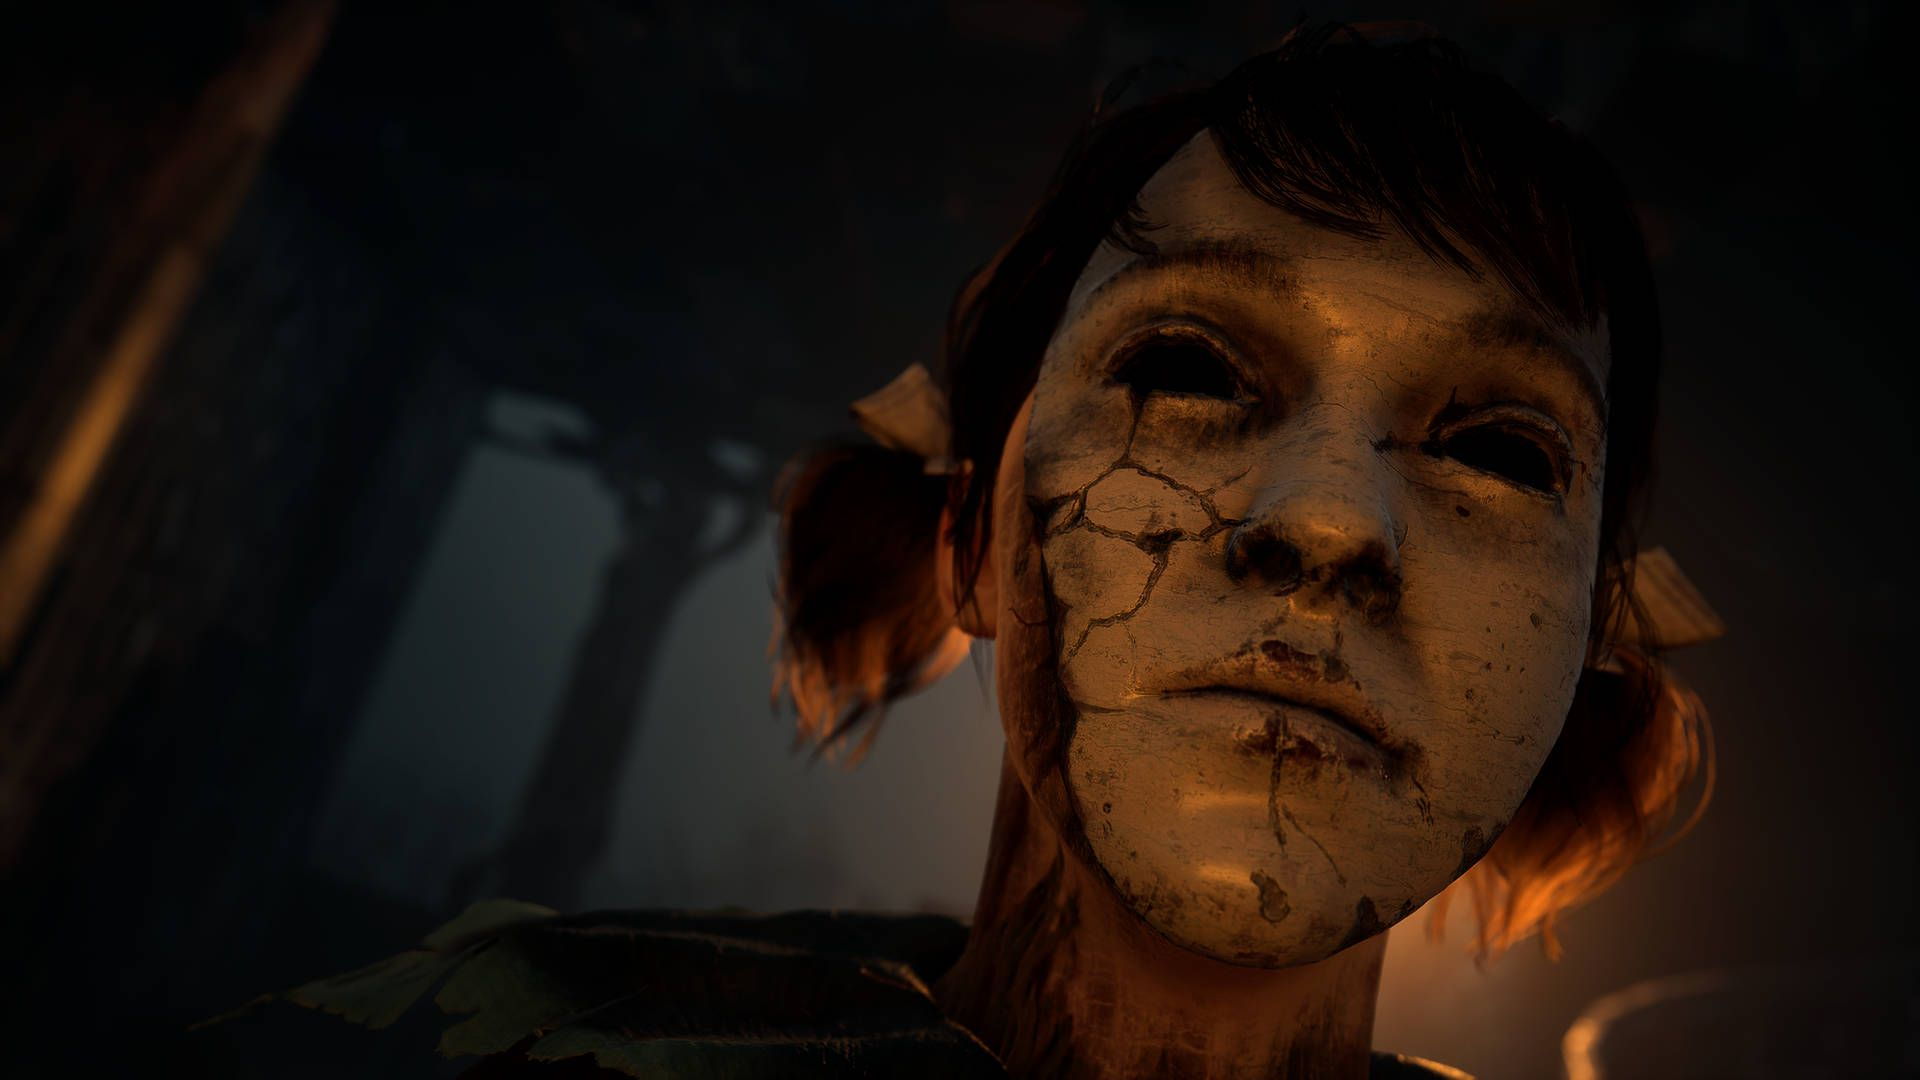 In-game screen shot from The Medium showing a portrait of the character Sadness